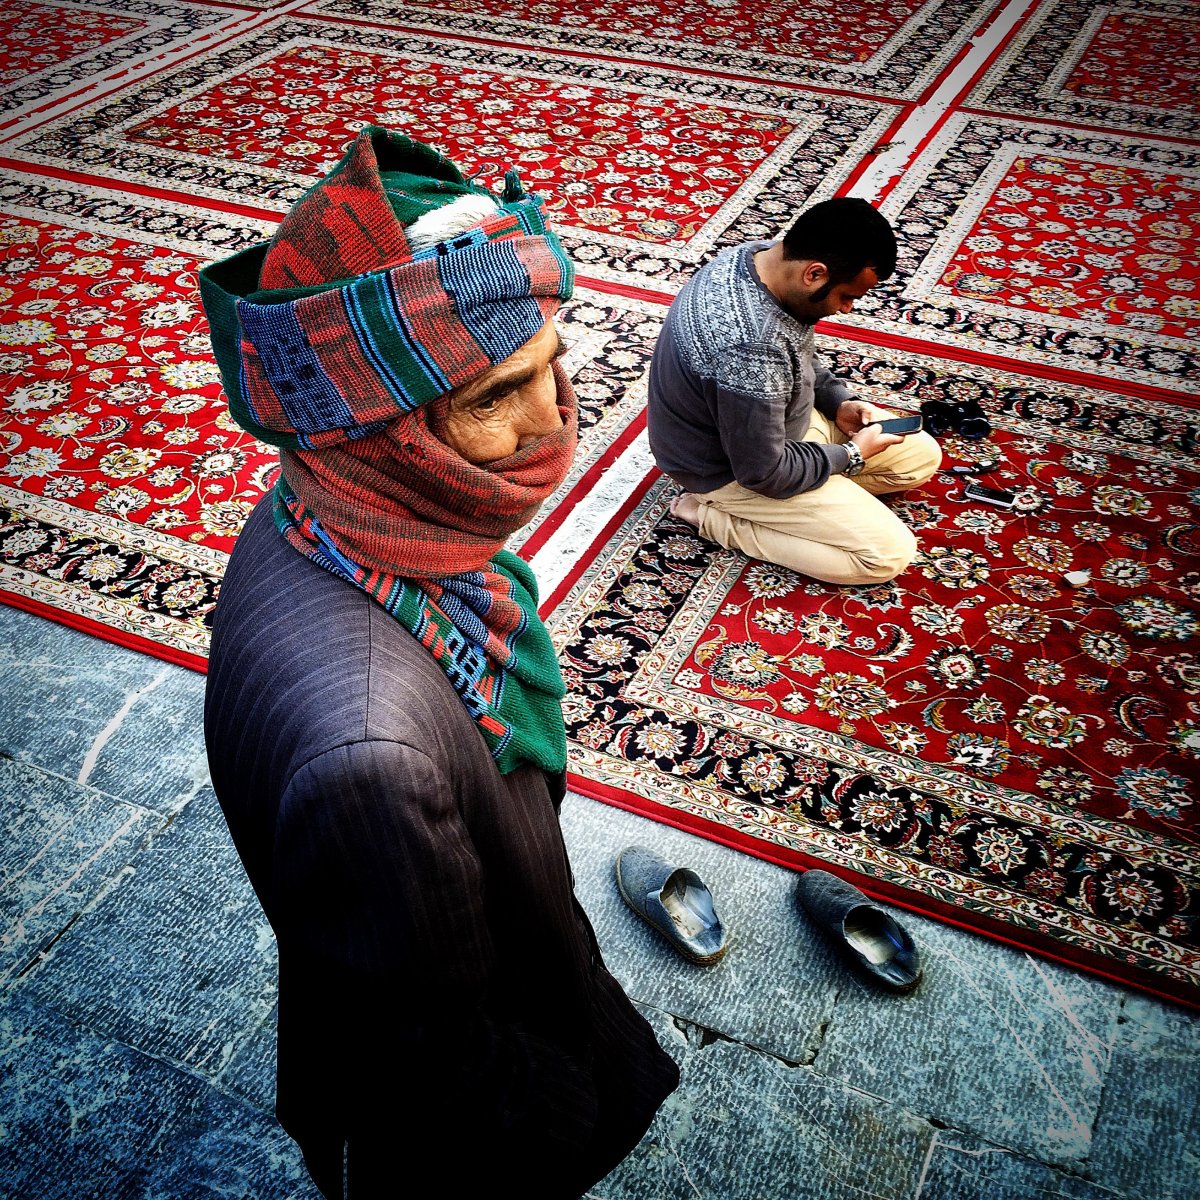 irans-hamed-nazari-has-two-photos-on-the-shortlist-this-one-shows-the-interior-of-the-imam-reza-shrine-in-mashhad-iran